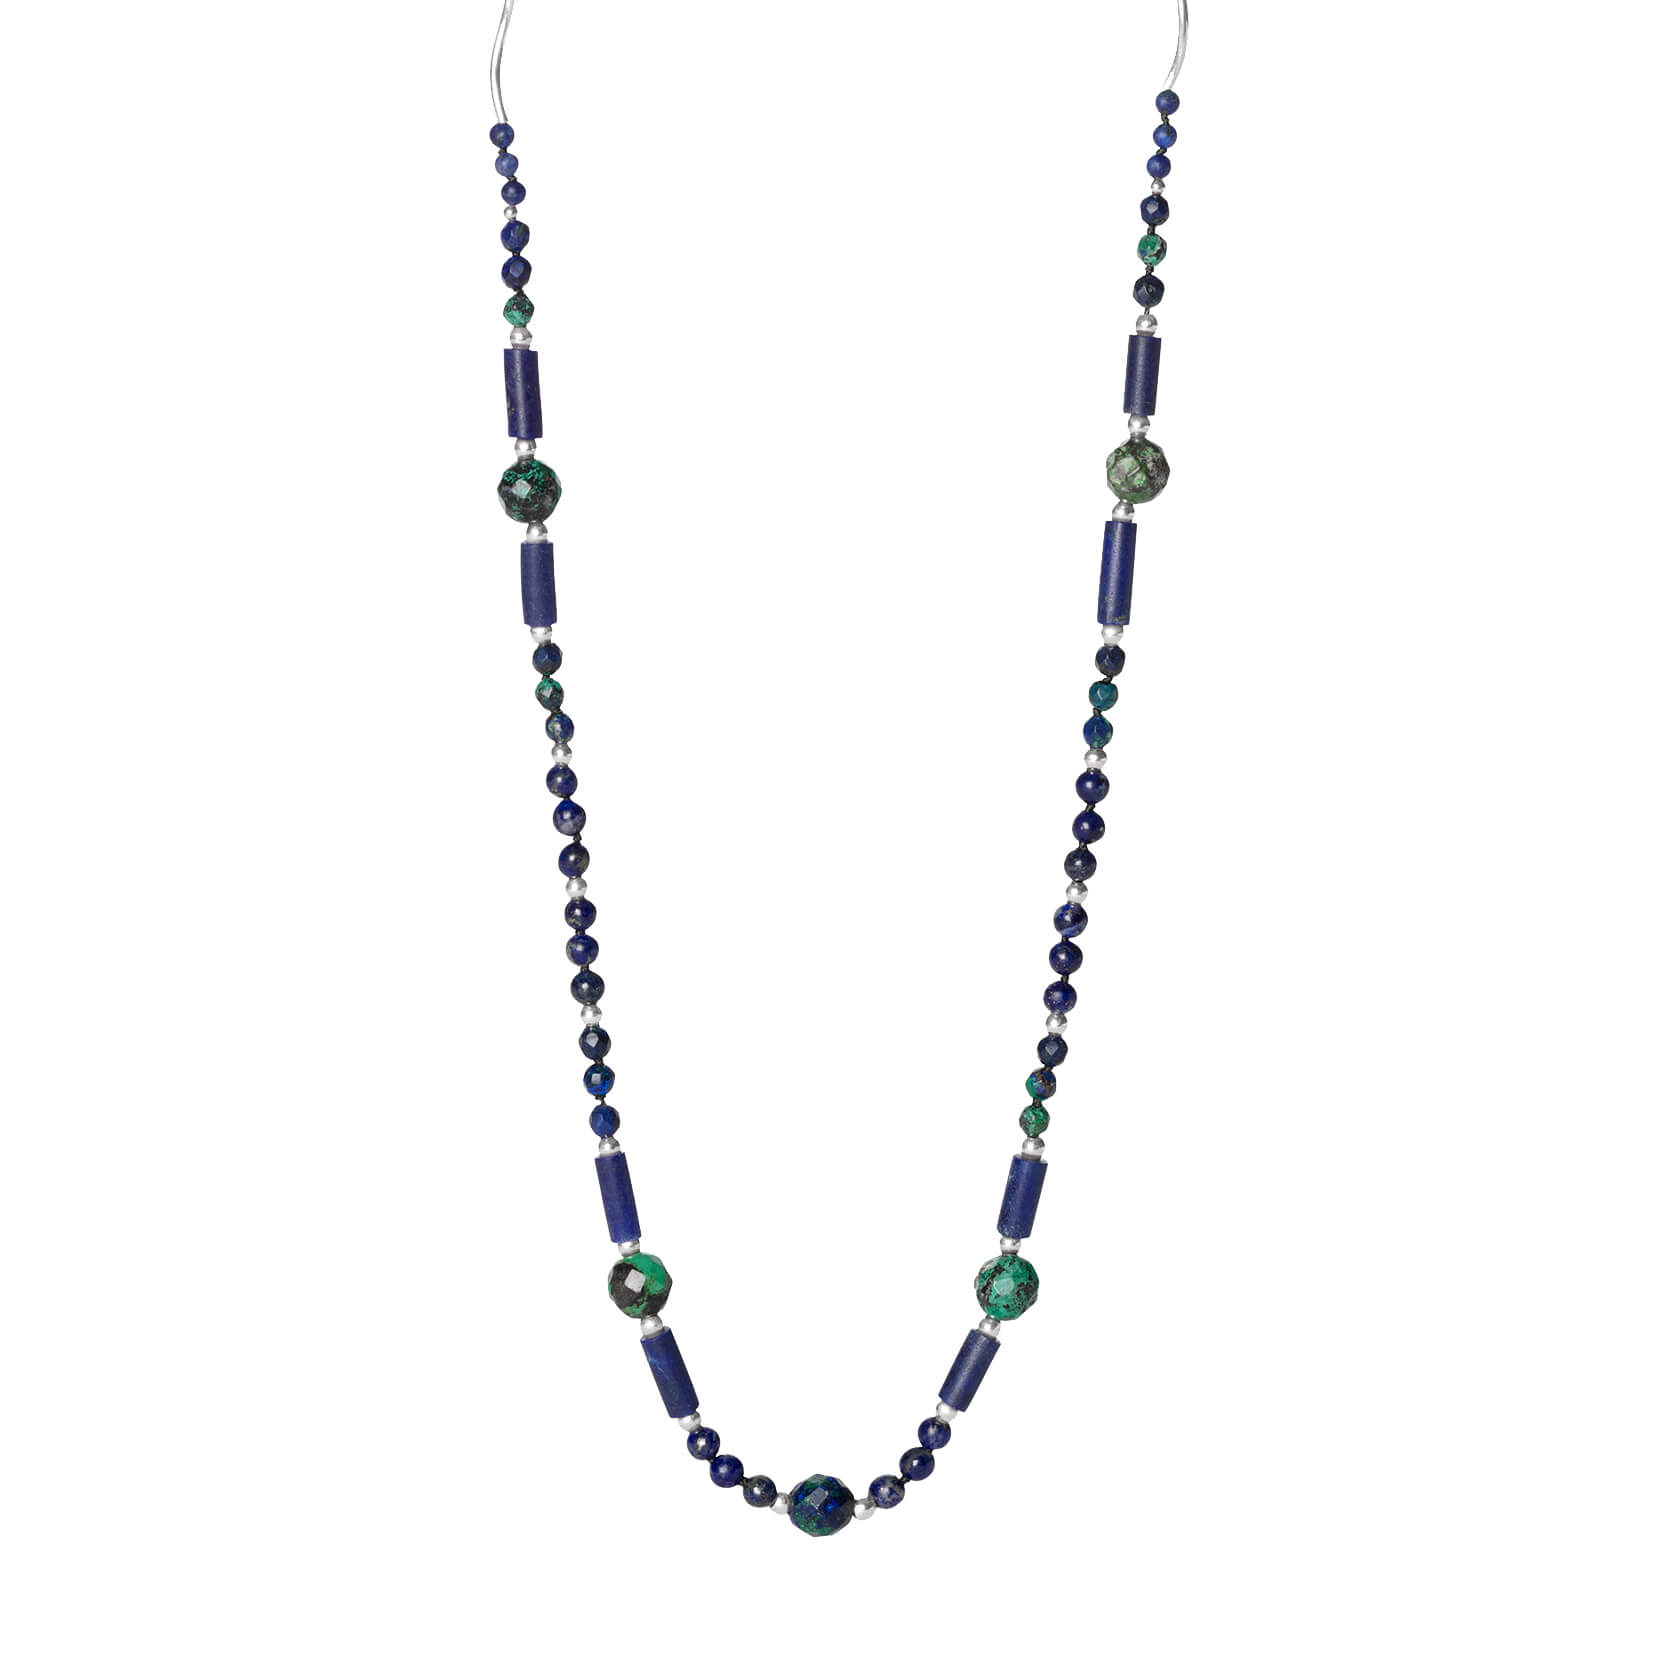 Lapis long necklace